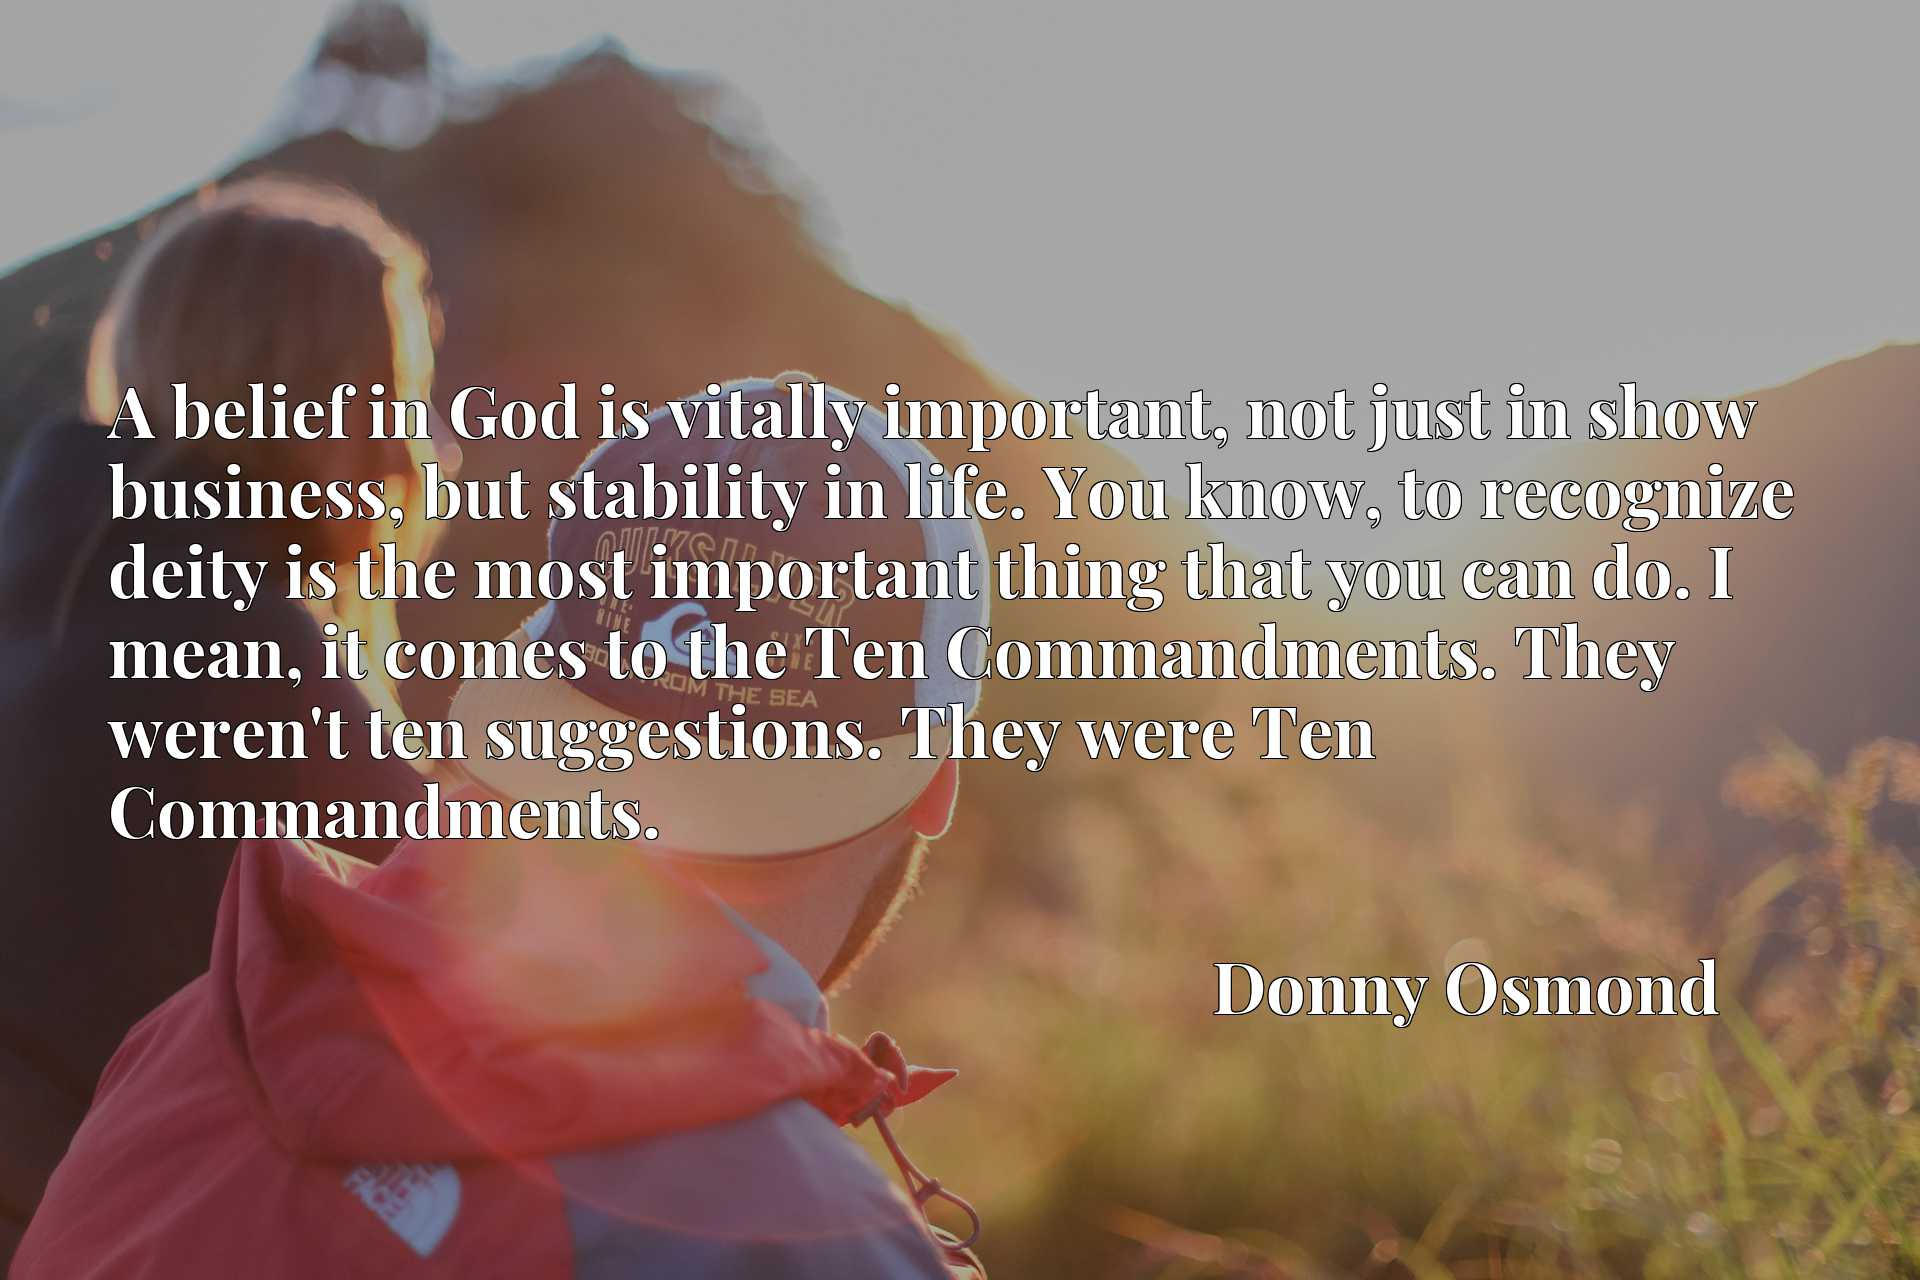 A belief in God is vitally important, not just in show business, but stability in life. You know, to recognize deity is the most important thing that you can do. I mean, it comes to the Ten Commandments. They weren't ten suggestions. They were Ten Commandments.